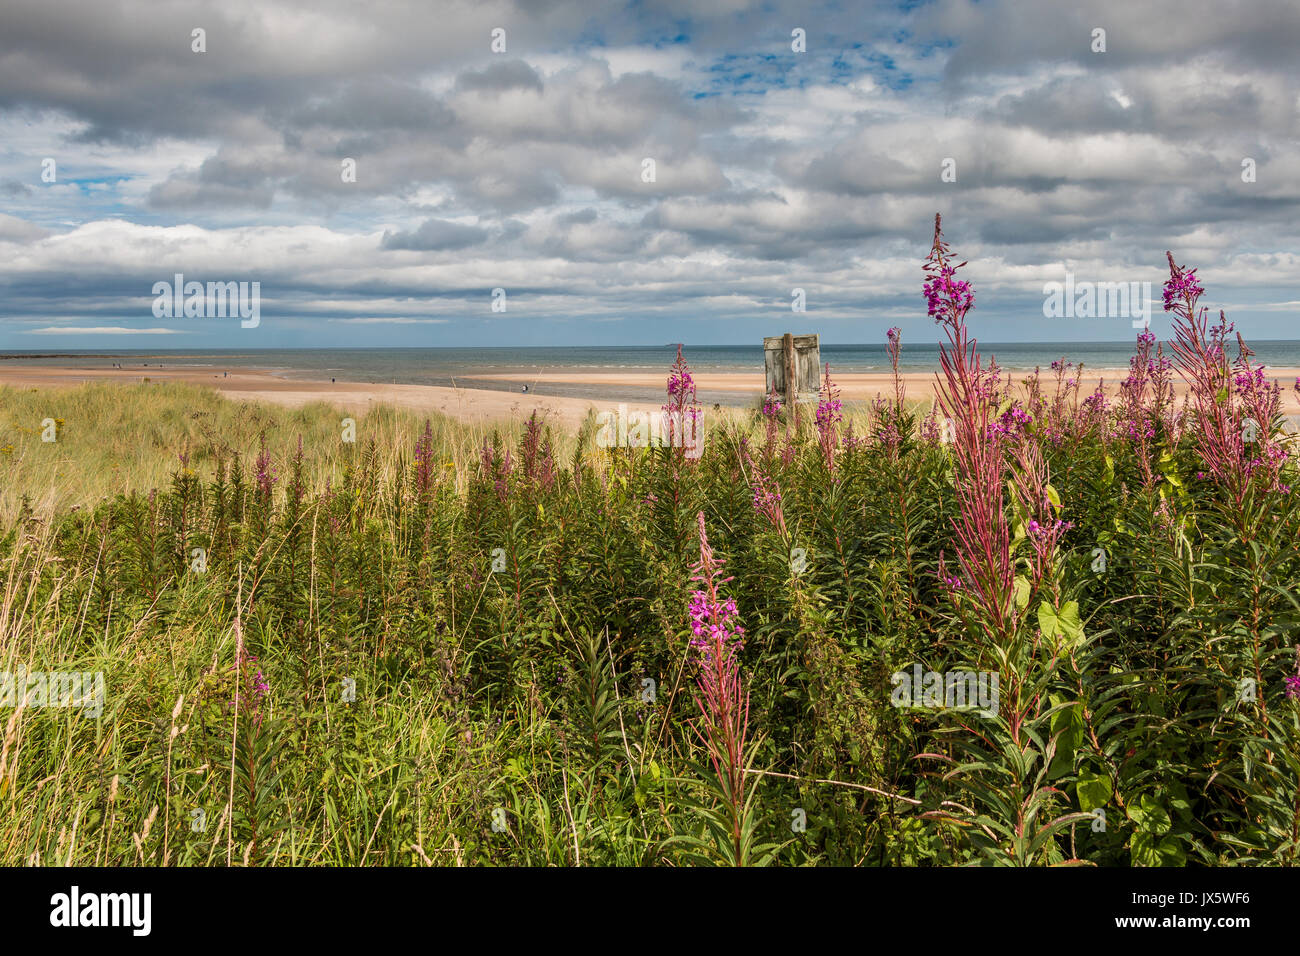 Alnmouth Beach, Northumberland Coast, UK with copy space - Stock Image